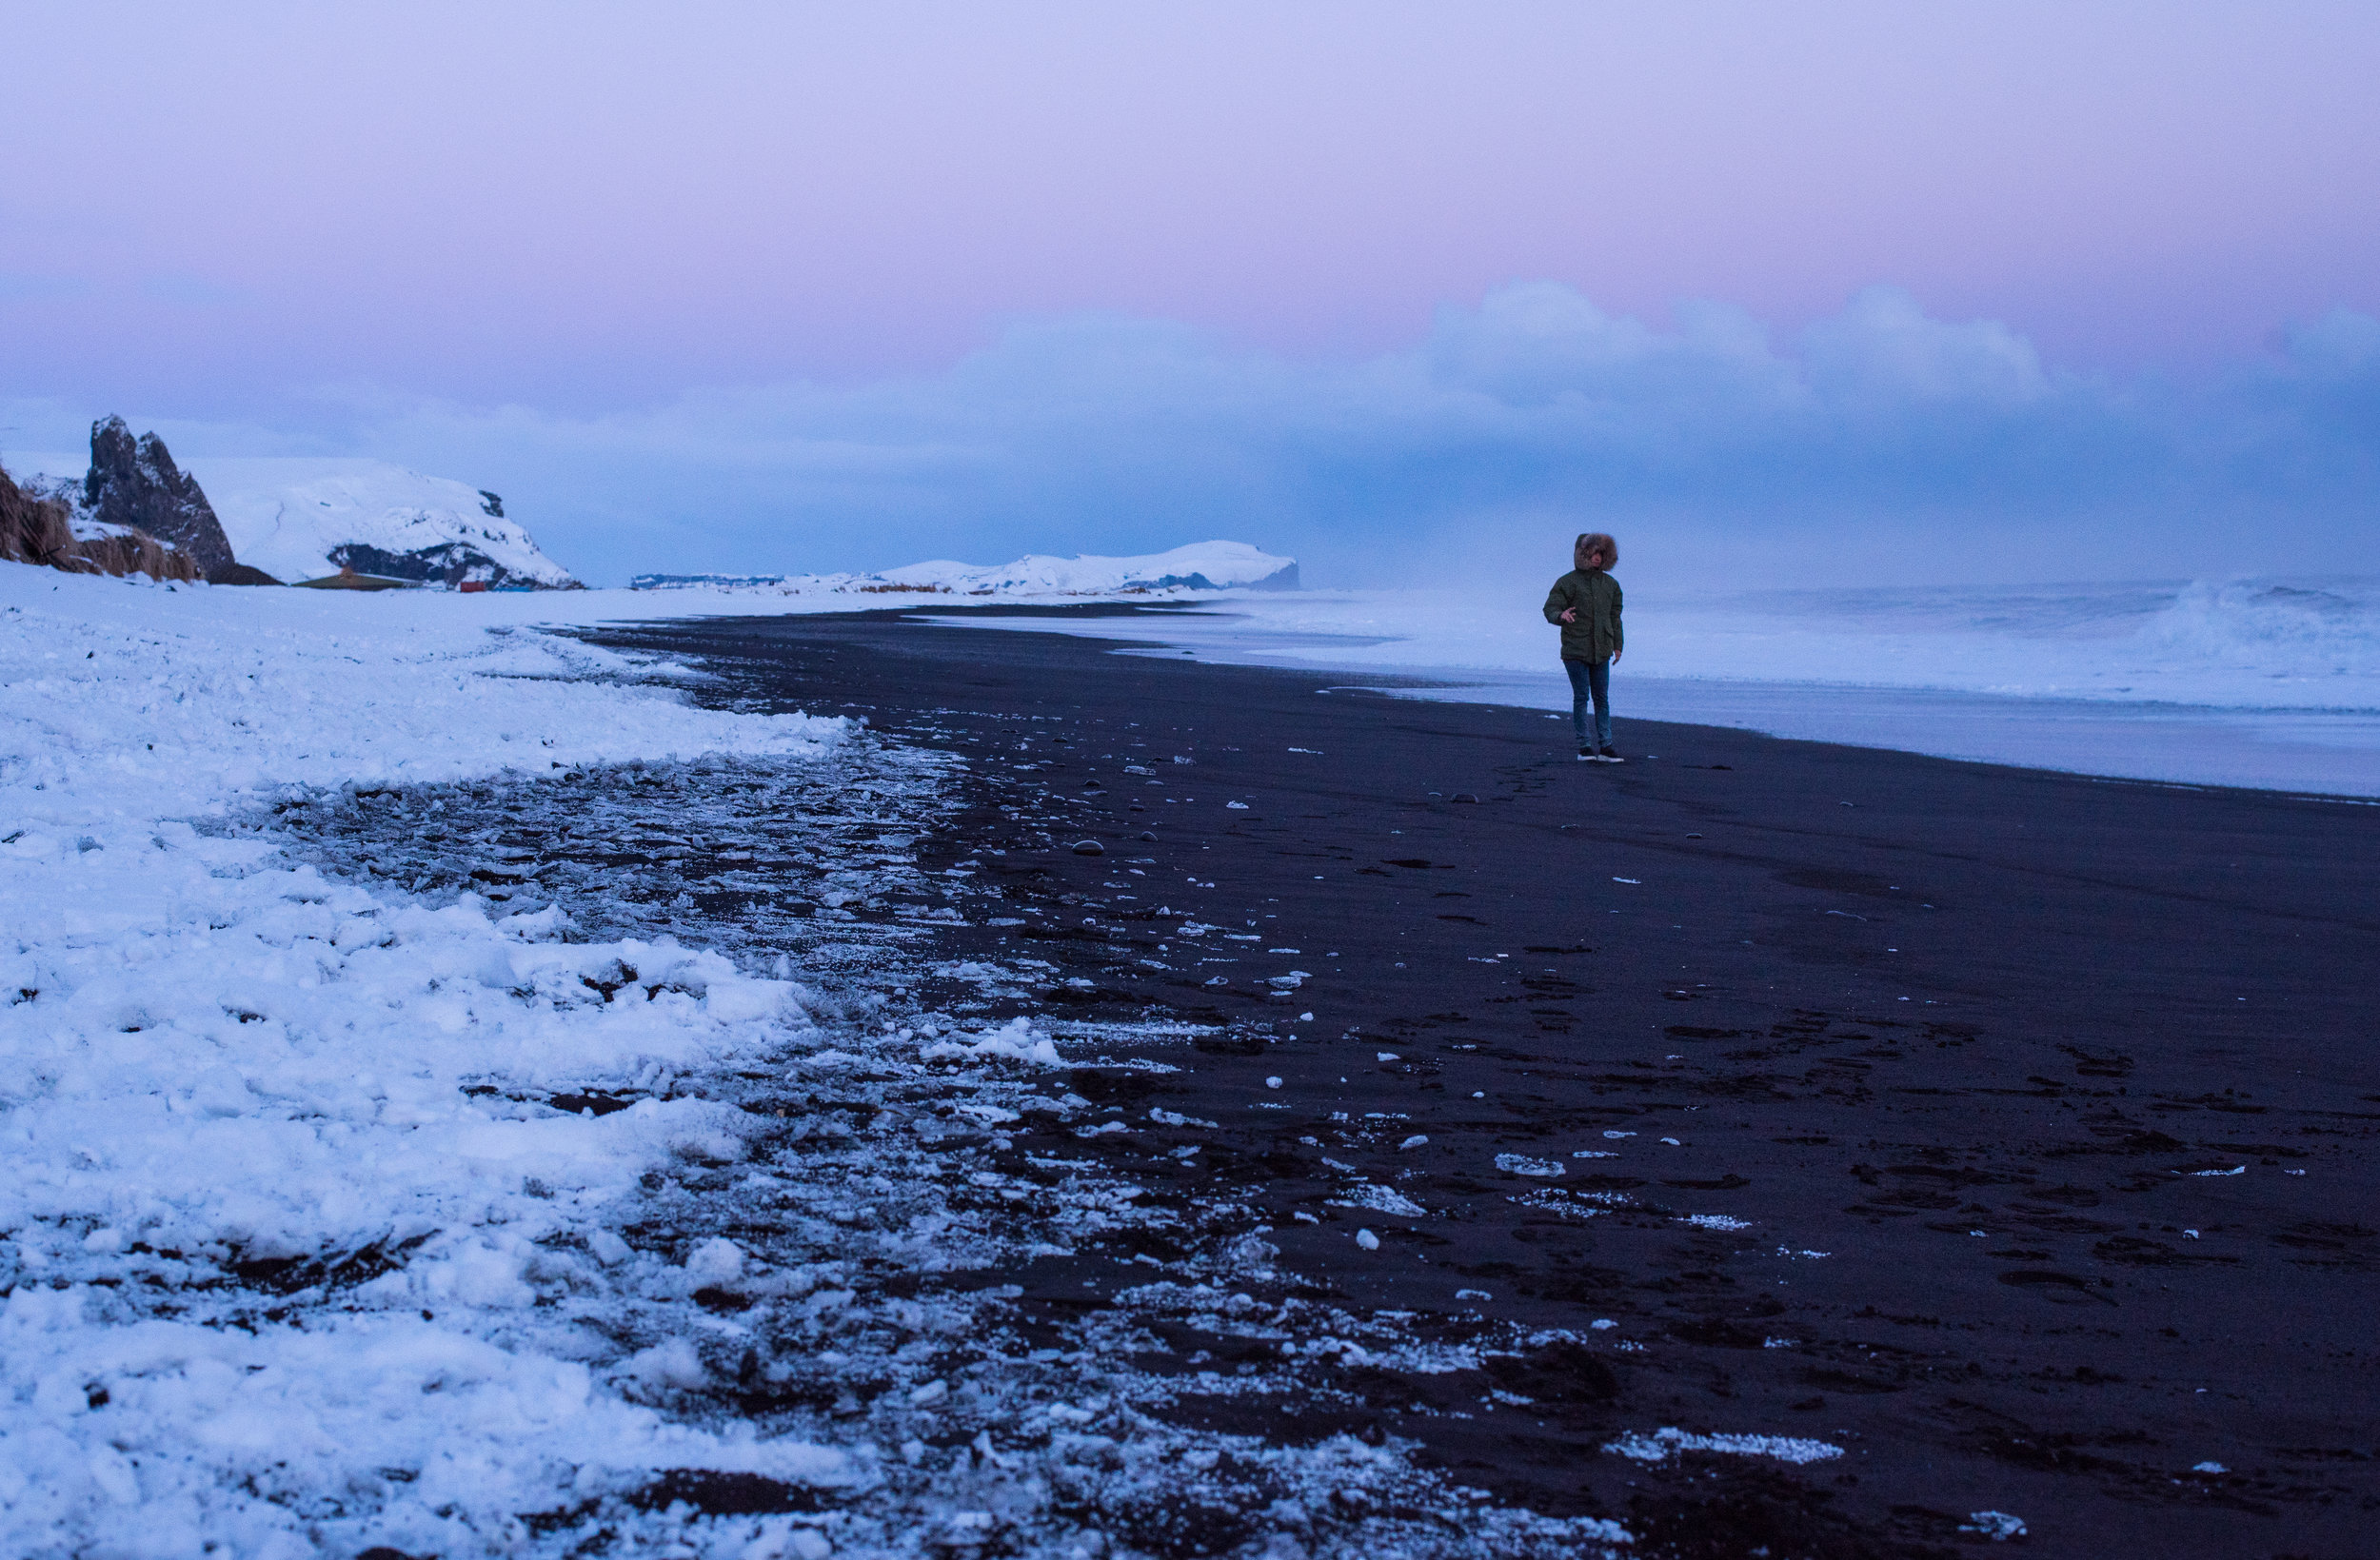 Parker walking a snowy beach outside Vik, Iceland.